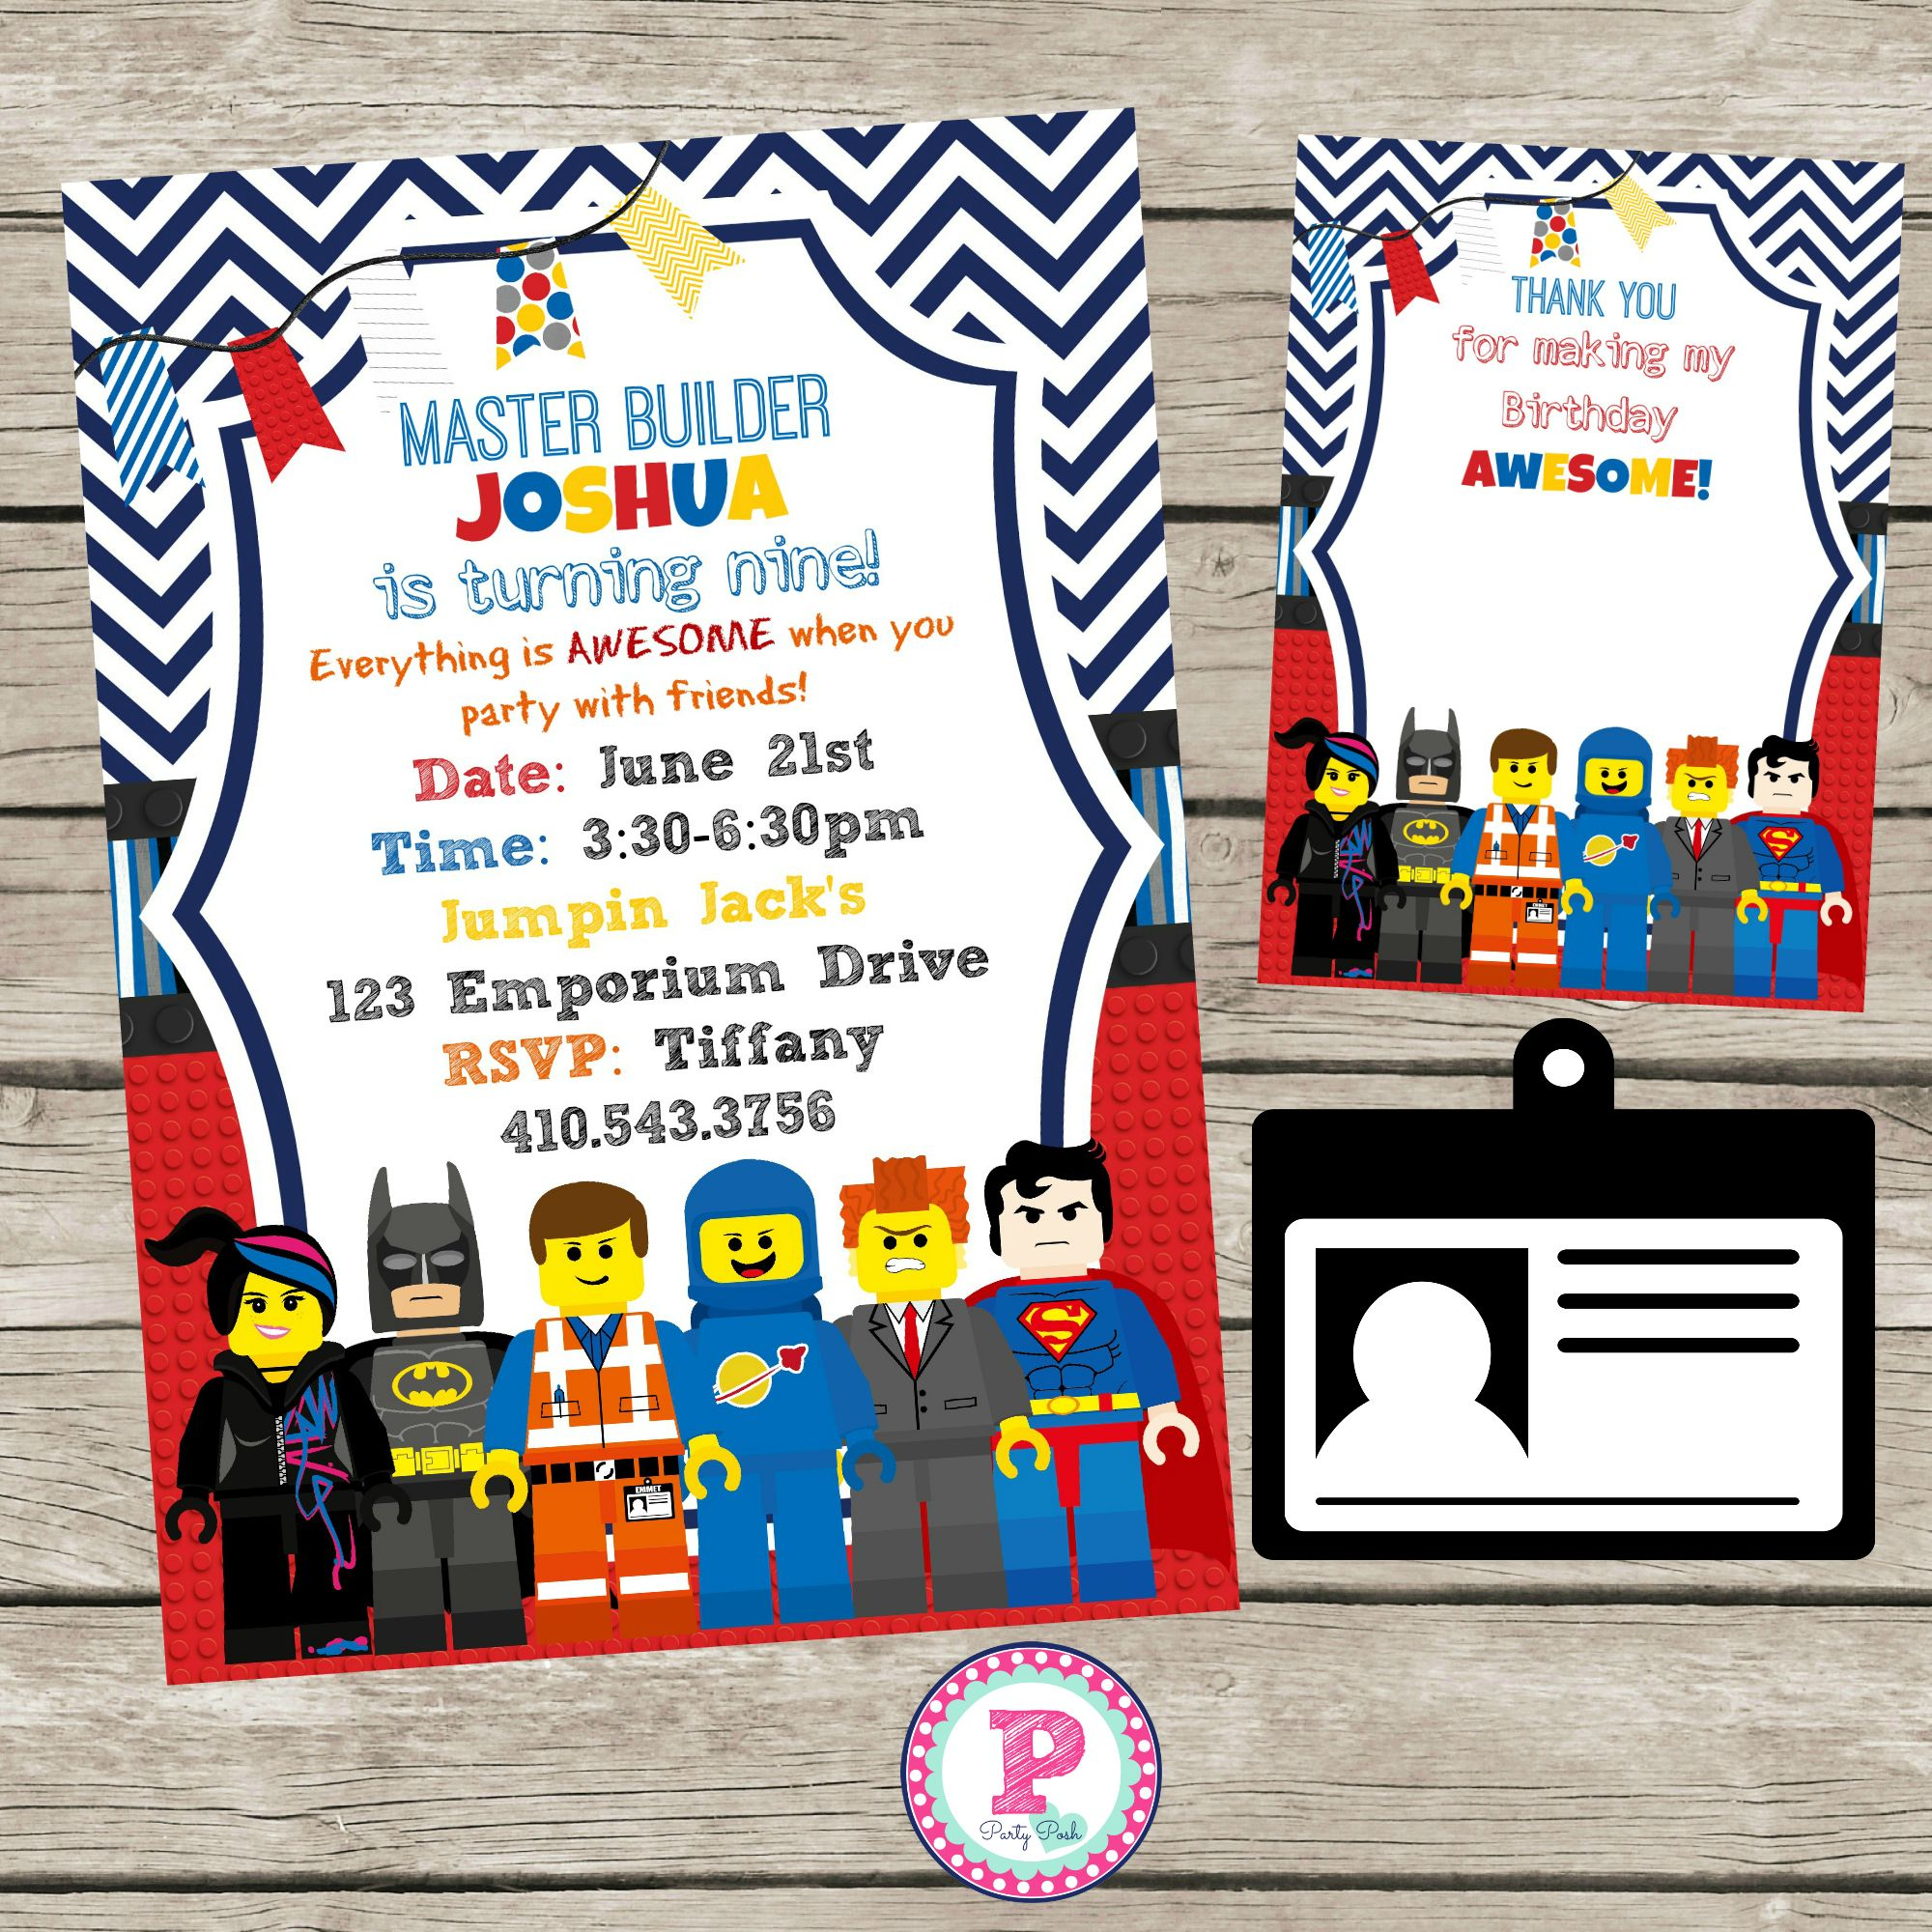 Navy Chevron Lego Movie Birthday Party Invitation | Lego Party ...